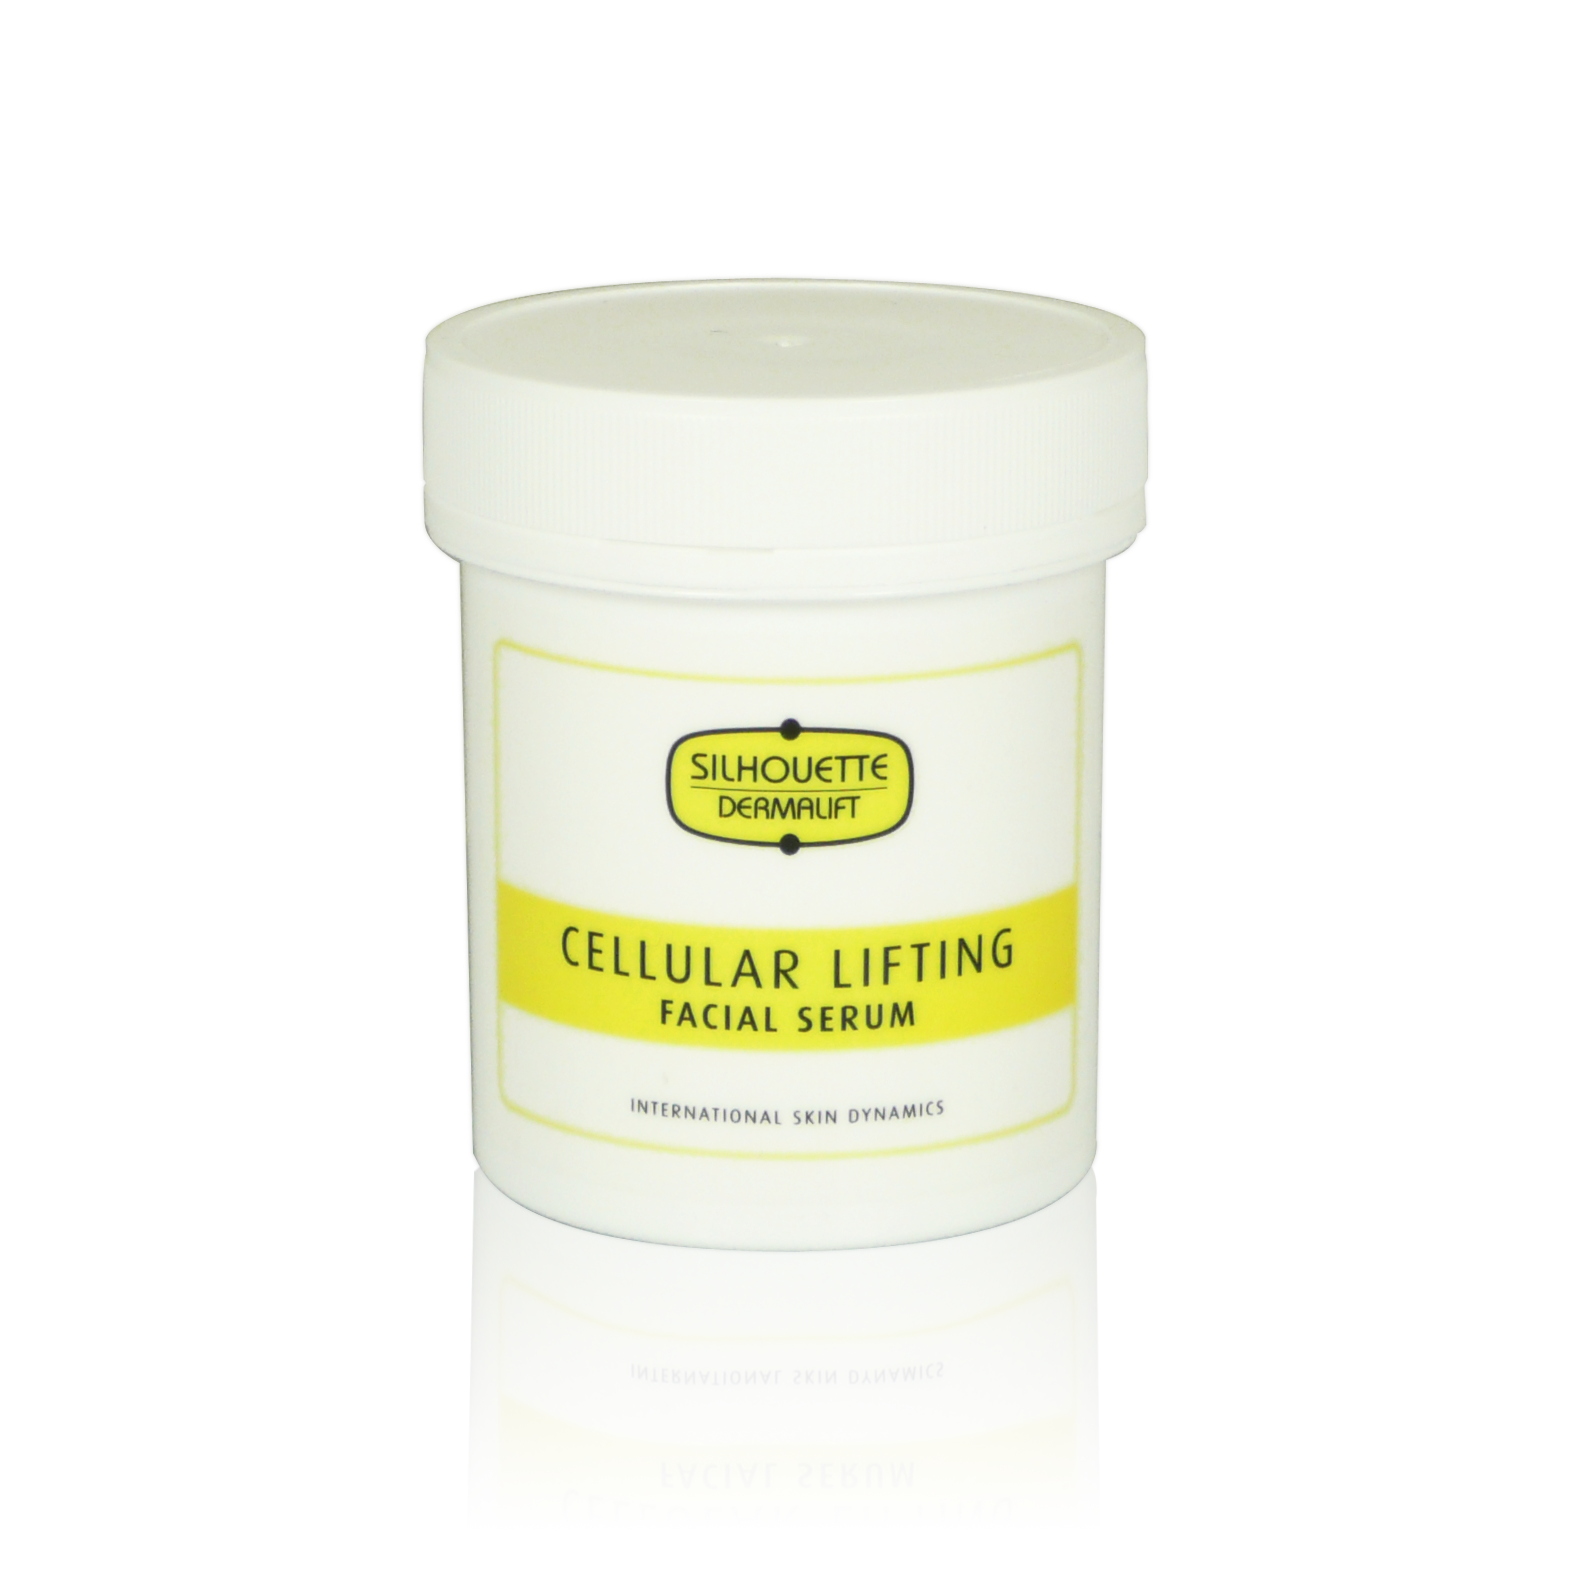 Cellular Tightening Masque